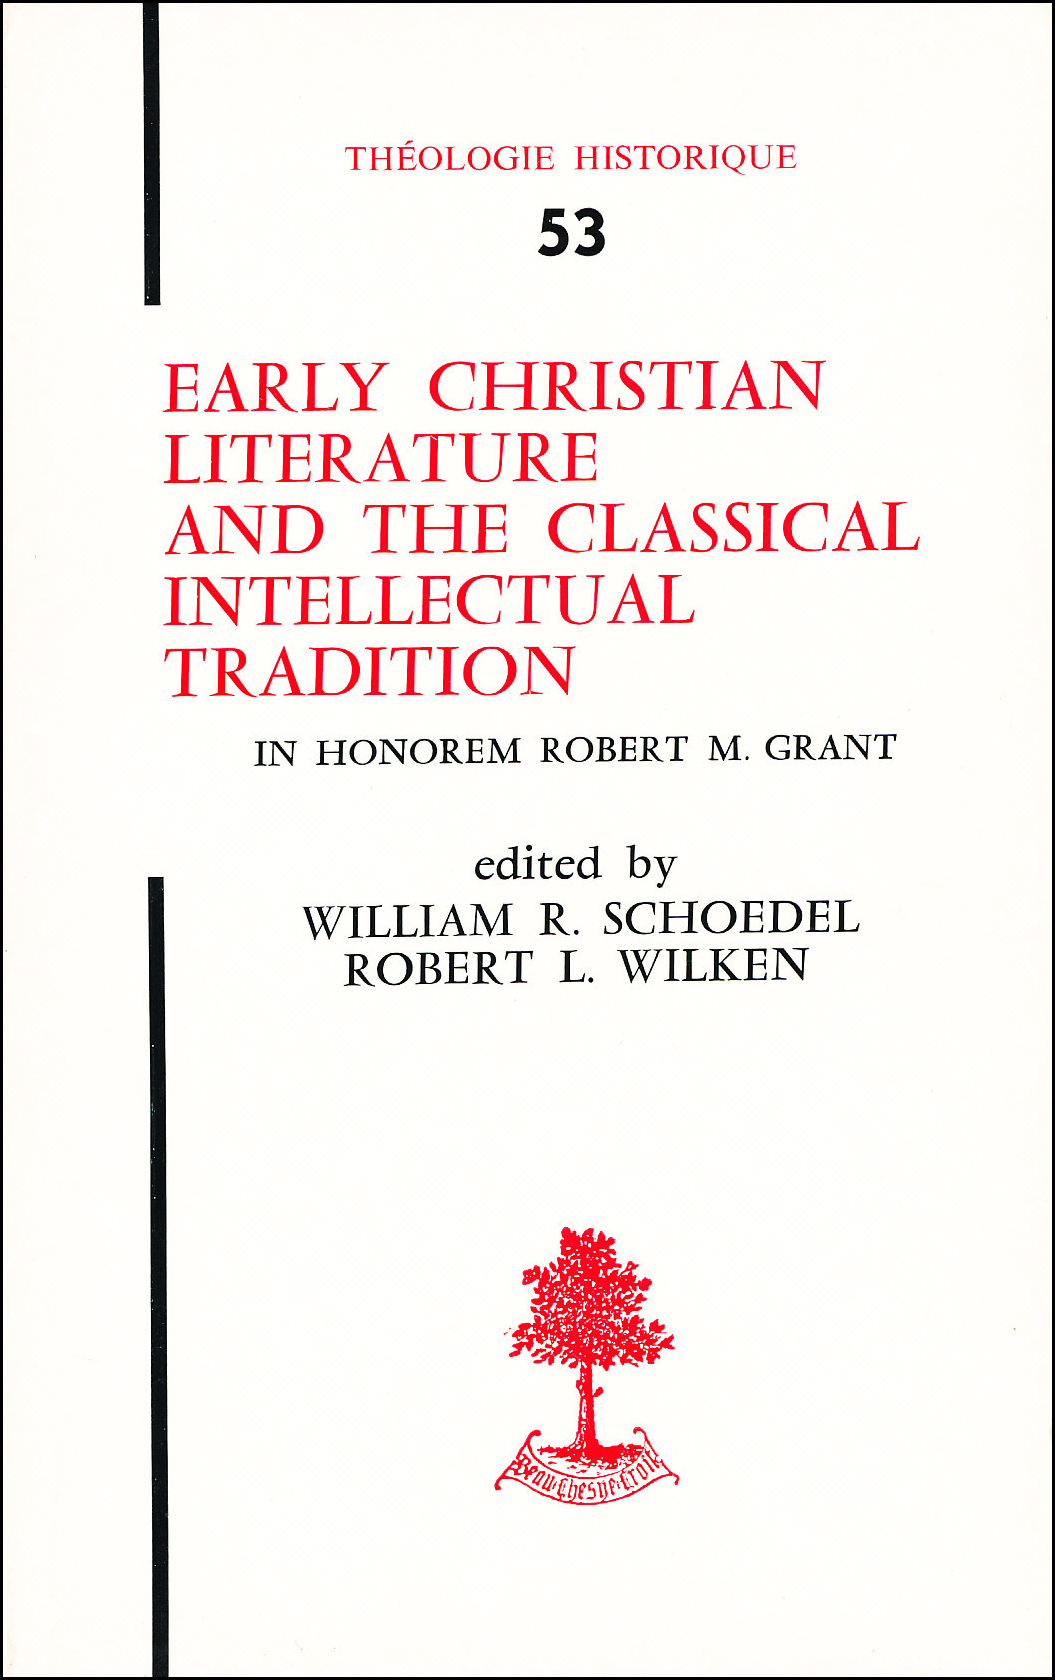 EARLY CHRISTIAN LITERATURE AND THE CLASSICAL INTELLECTUAL TRADITION MELANGES OFFERTS A R. M. GRANT